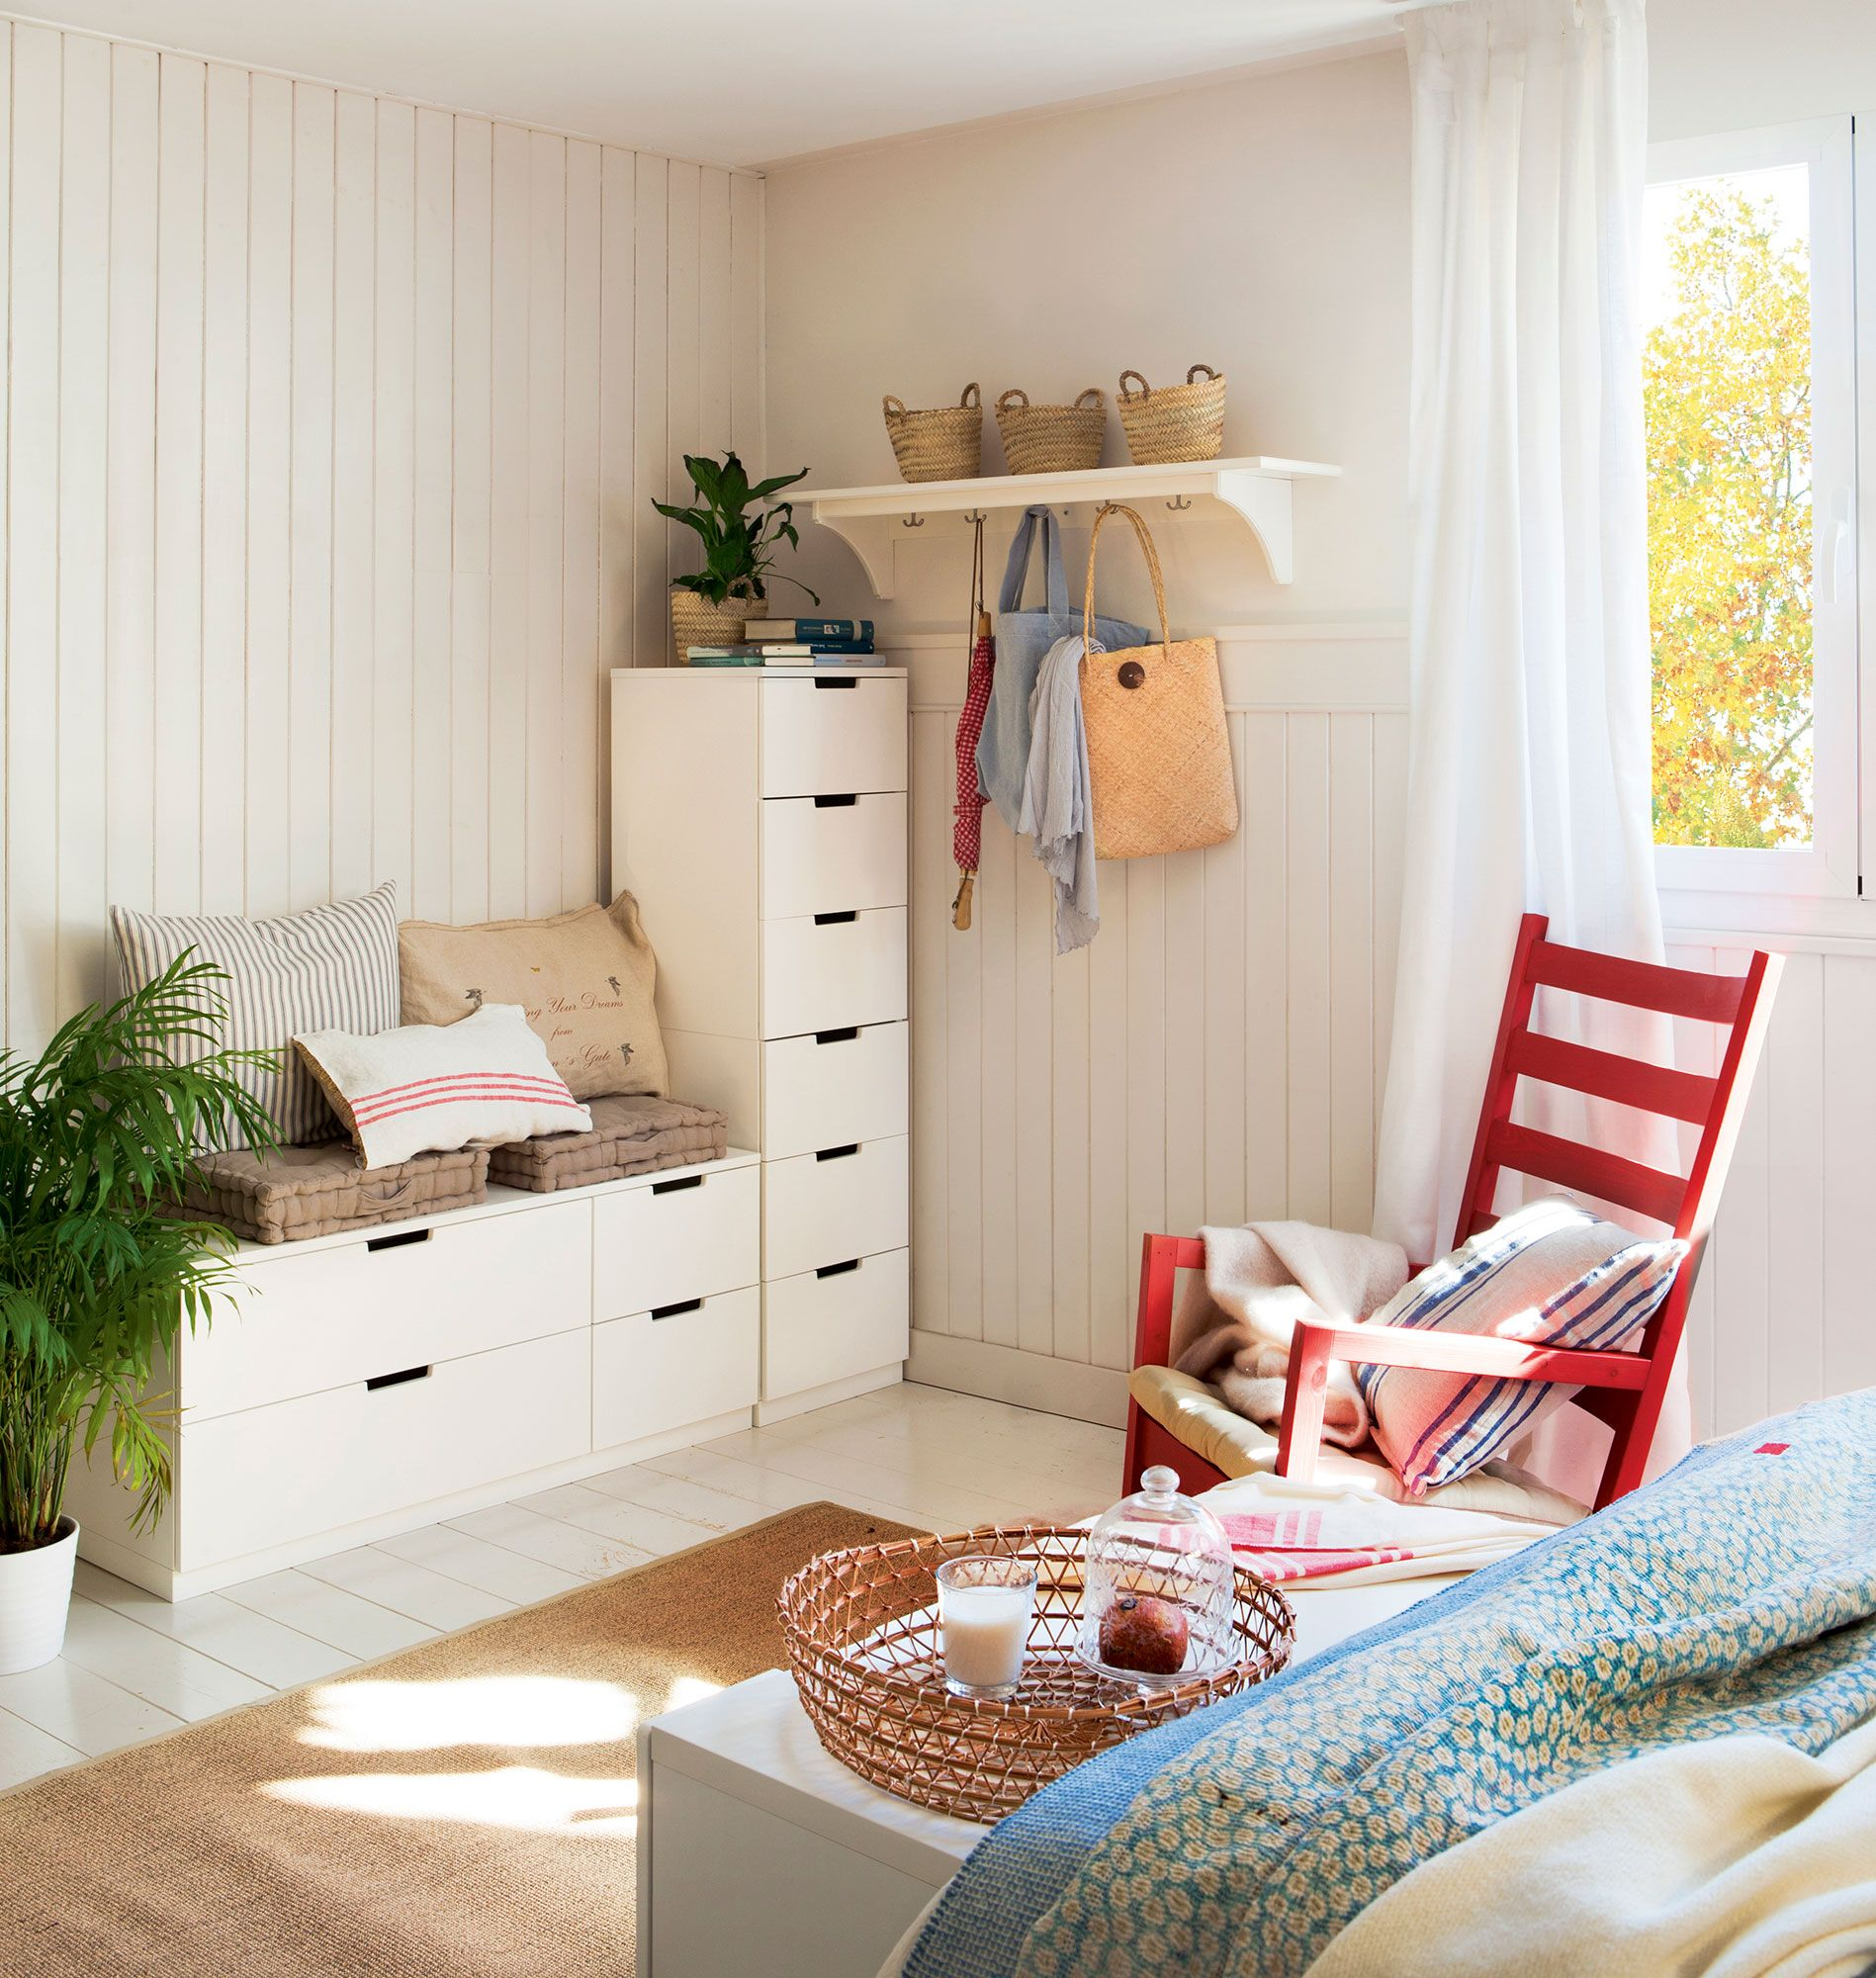 Dormitorio Niños Ikea Pin De Alev Avci En Bedrooms Bedroom Bedroom Decor Y